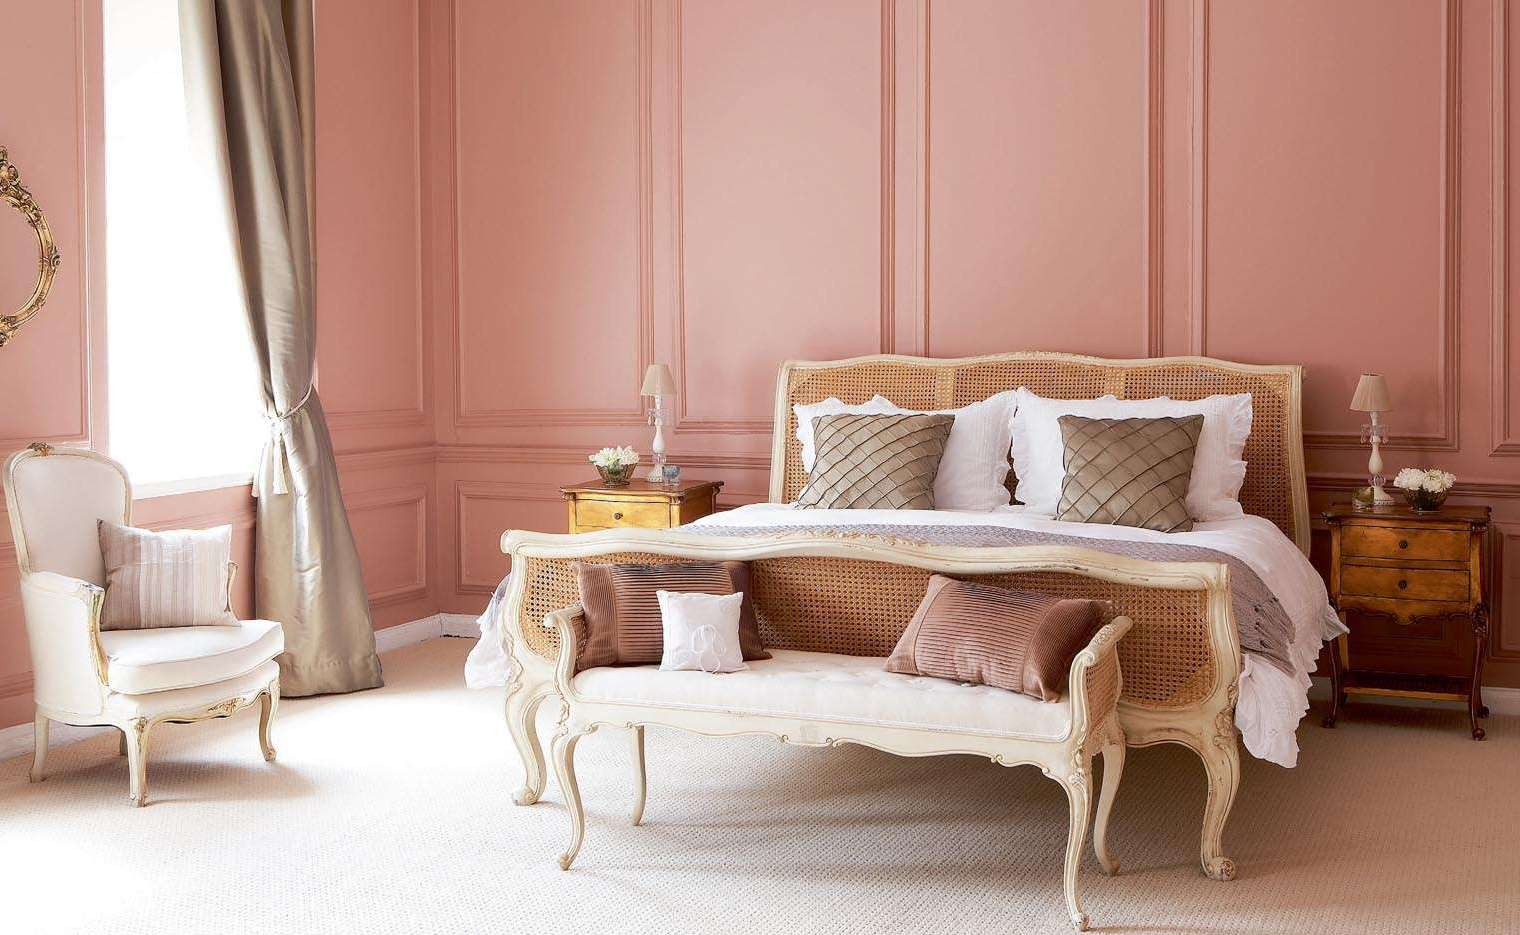 wohnzimmer farbe taupe: wohnzimmer taupe : Farbe Taupe elegante Wandfarbe Taupe fresHouse ~ wohnzimmer farbe taupe